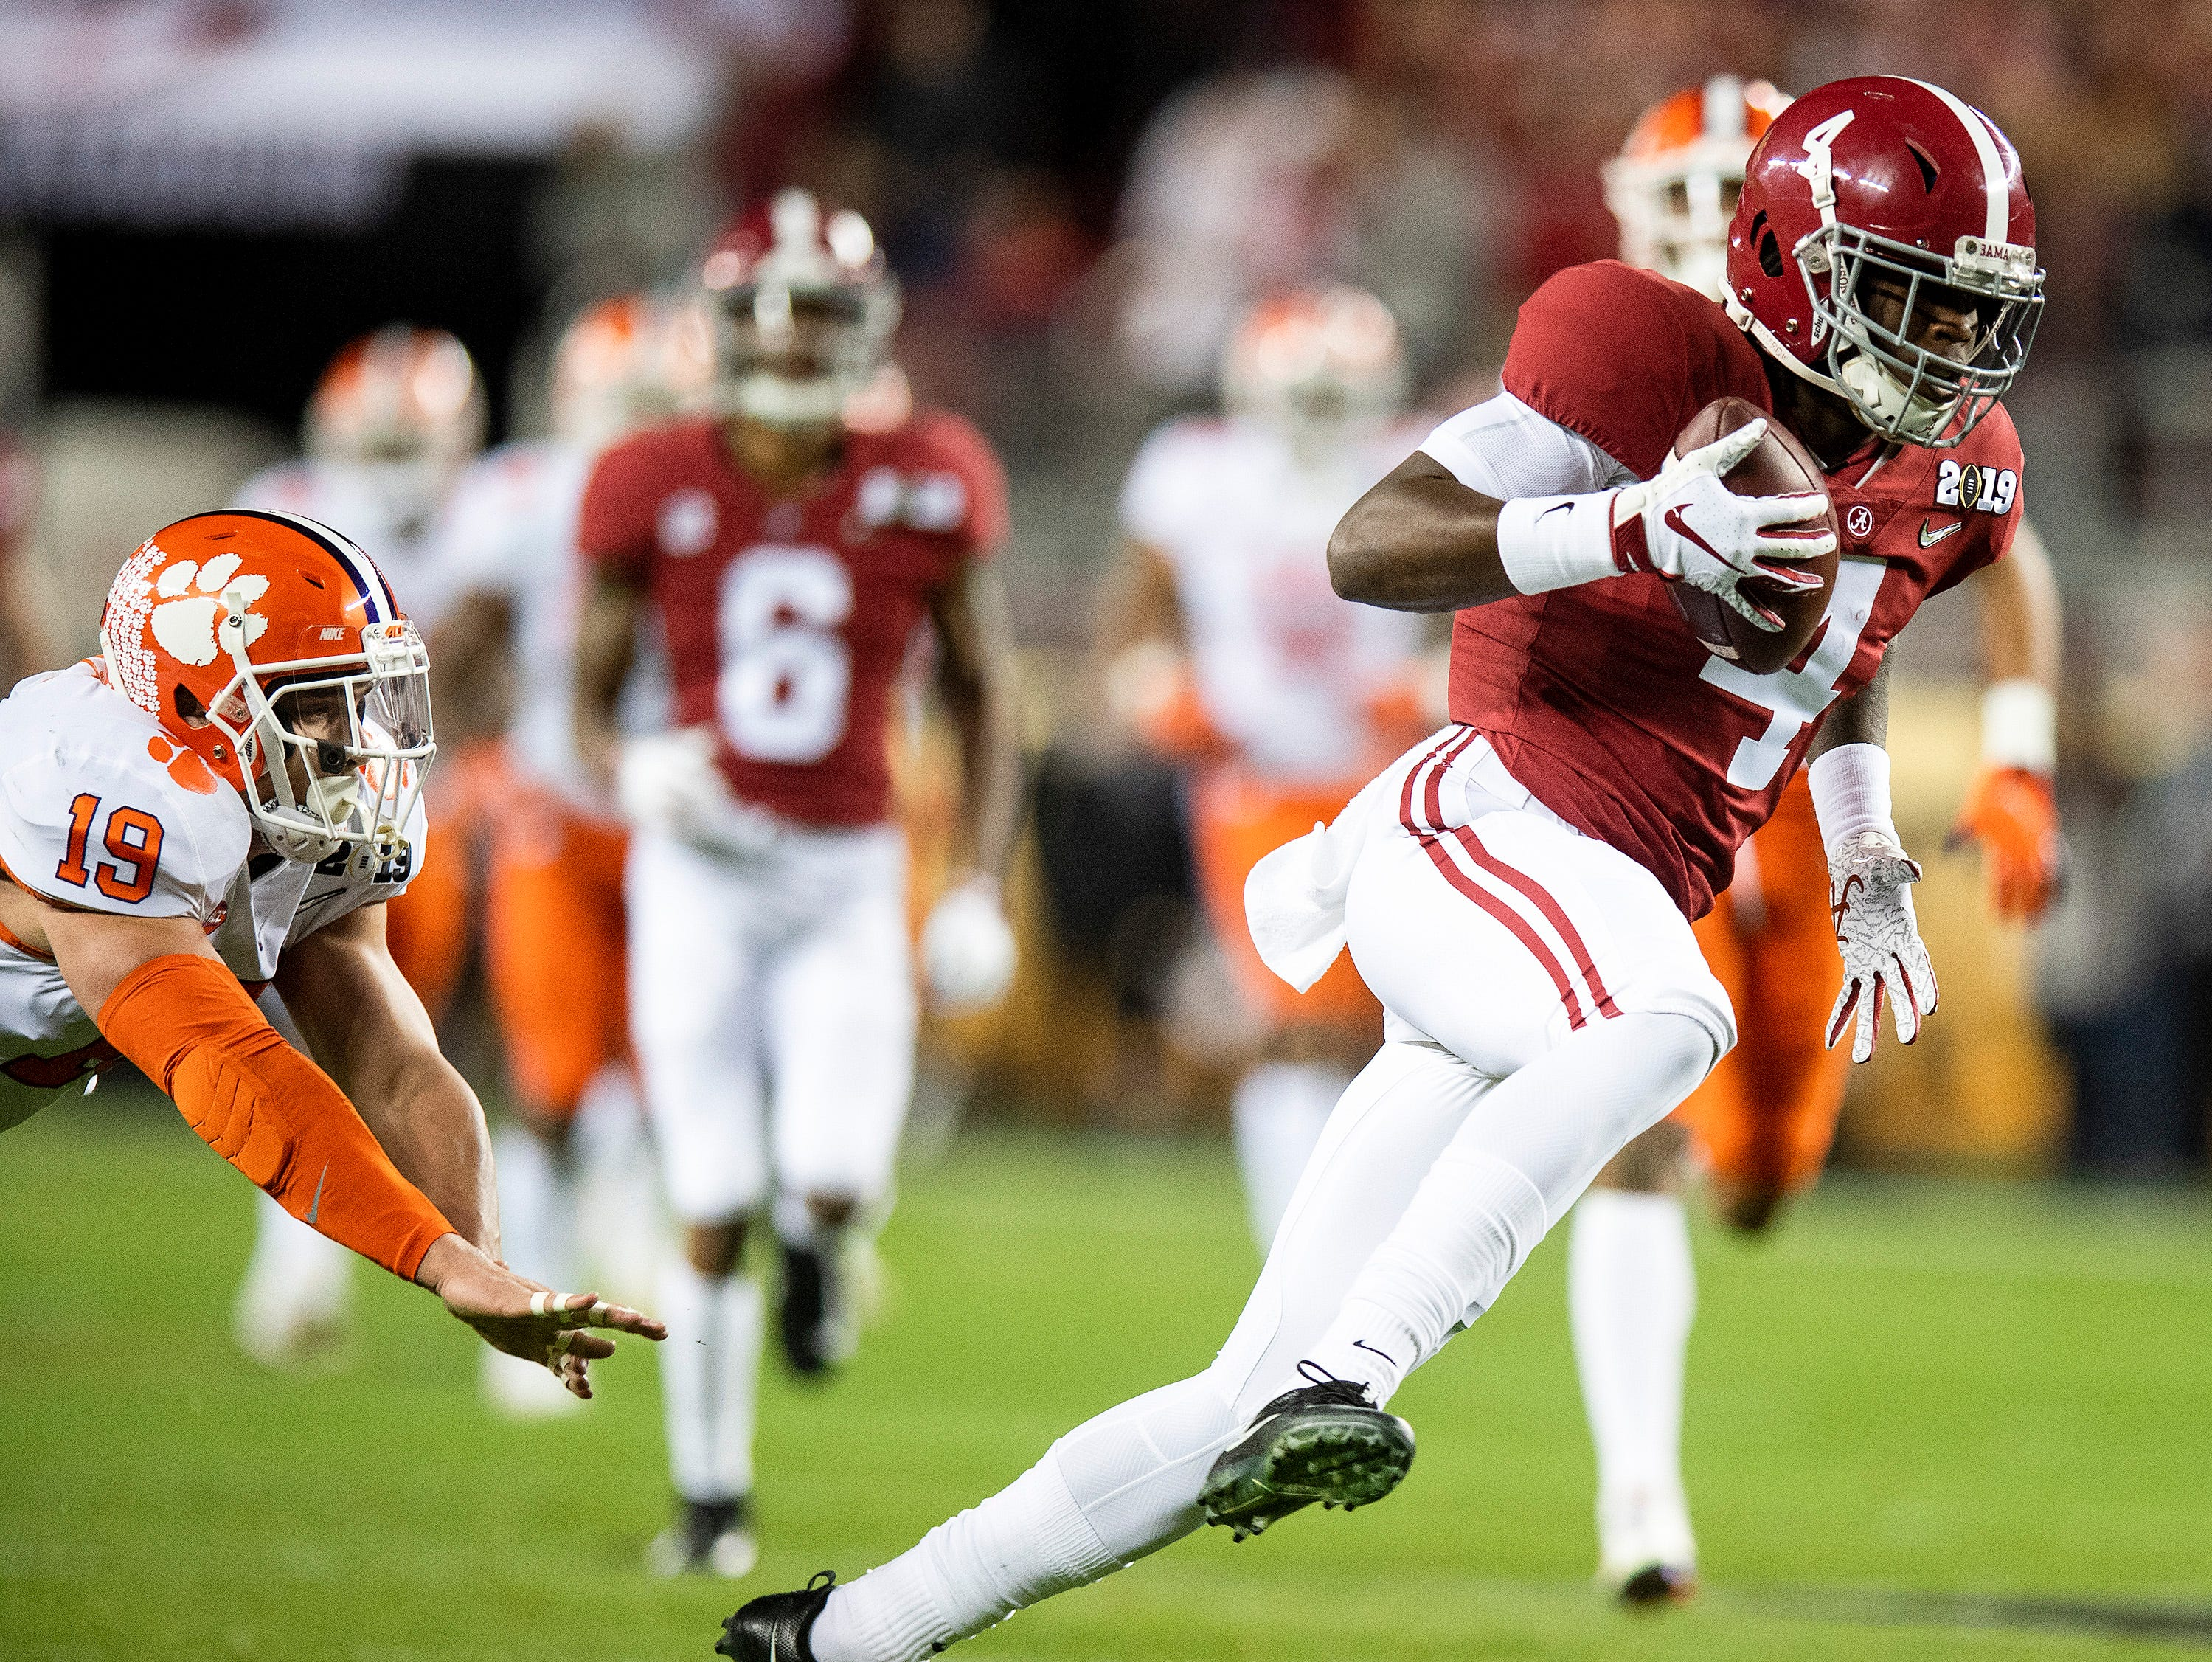 Alabama wide receiver Jerry Jeudy (4) scores a touchdown against Clemson In first half action of the College Football Playoff National Championship game at Levi's Stadium in Santa Clara, Ca., on Monday January 7, 2019.